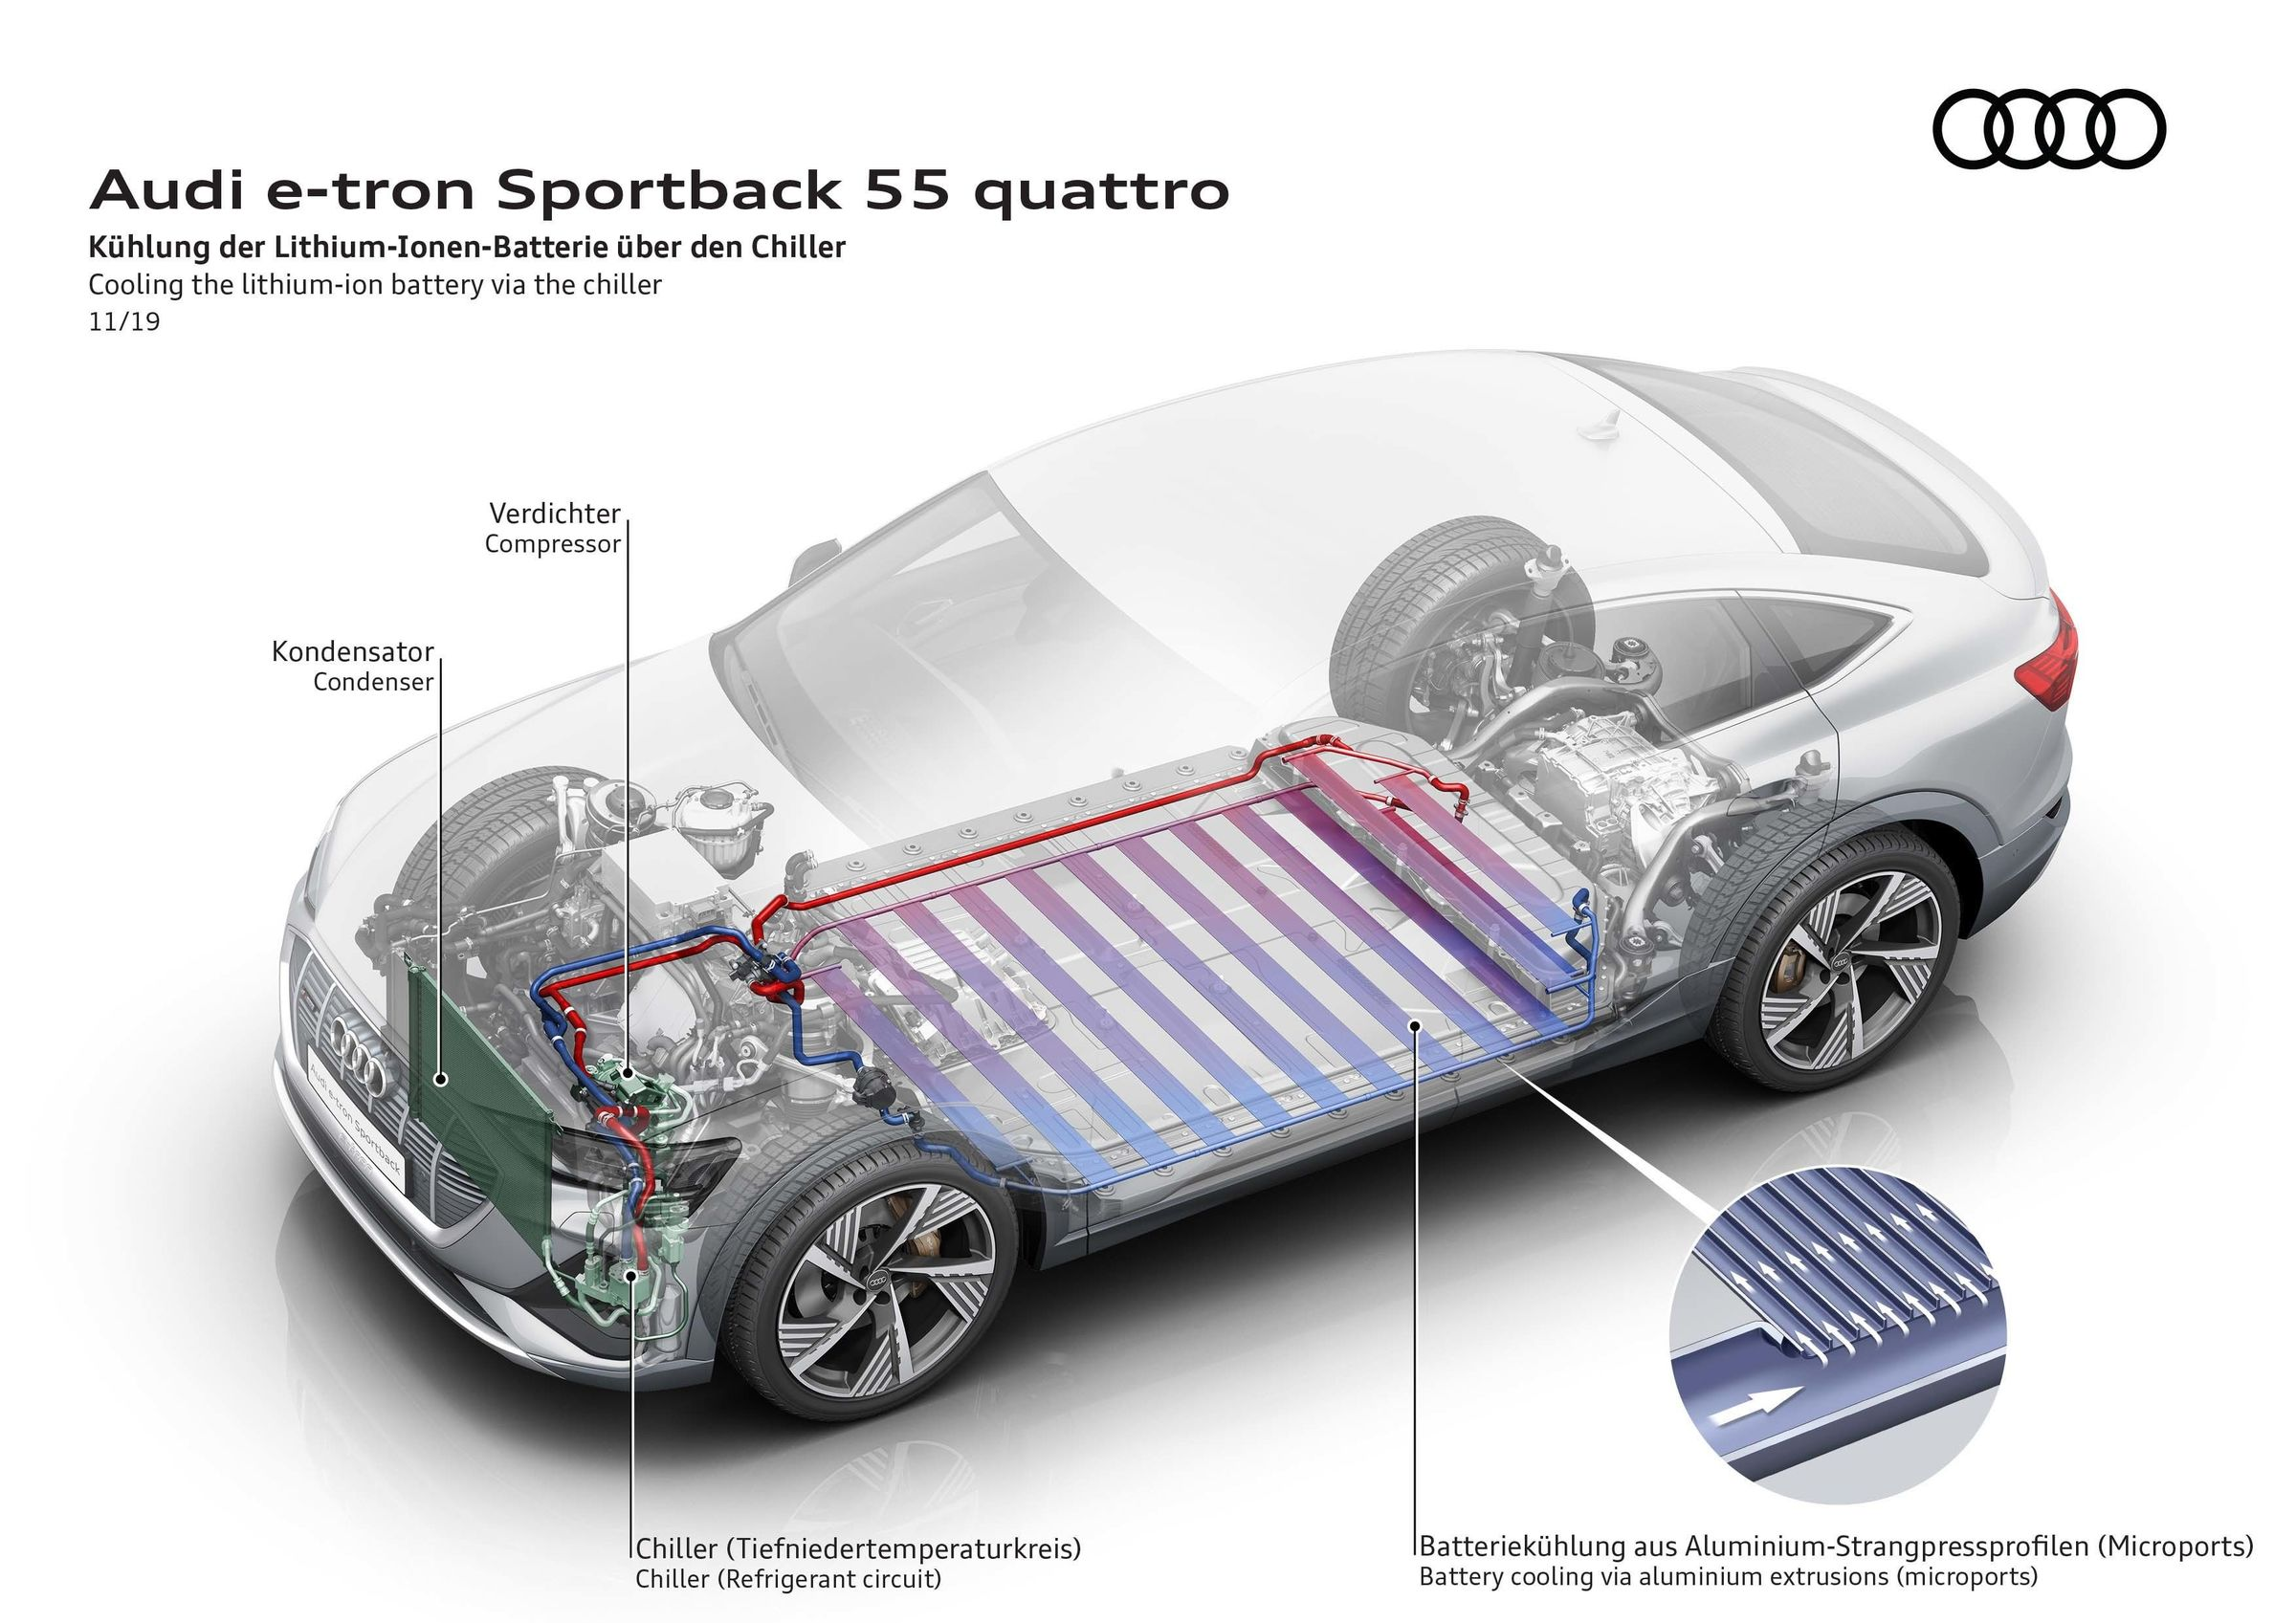 Charging capacity vs. charging speed: What constitutes high charging performance - Image 6